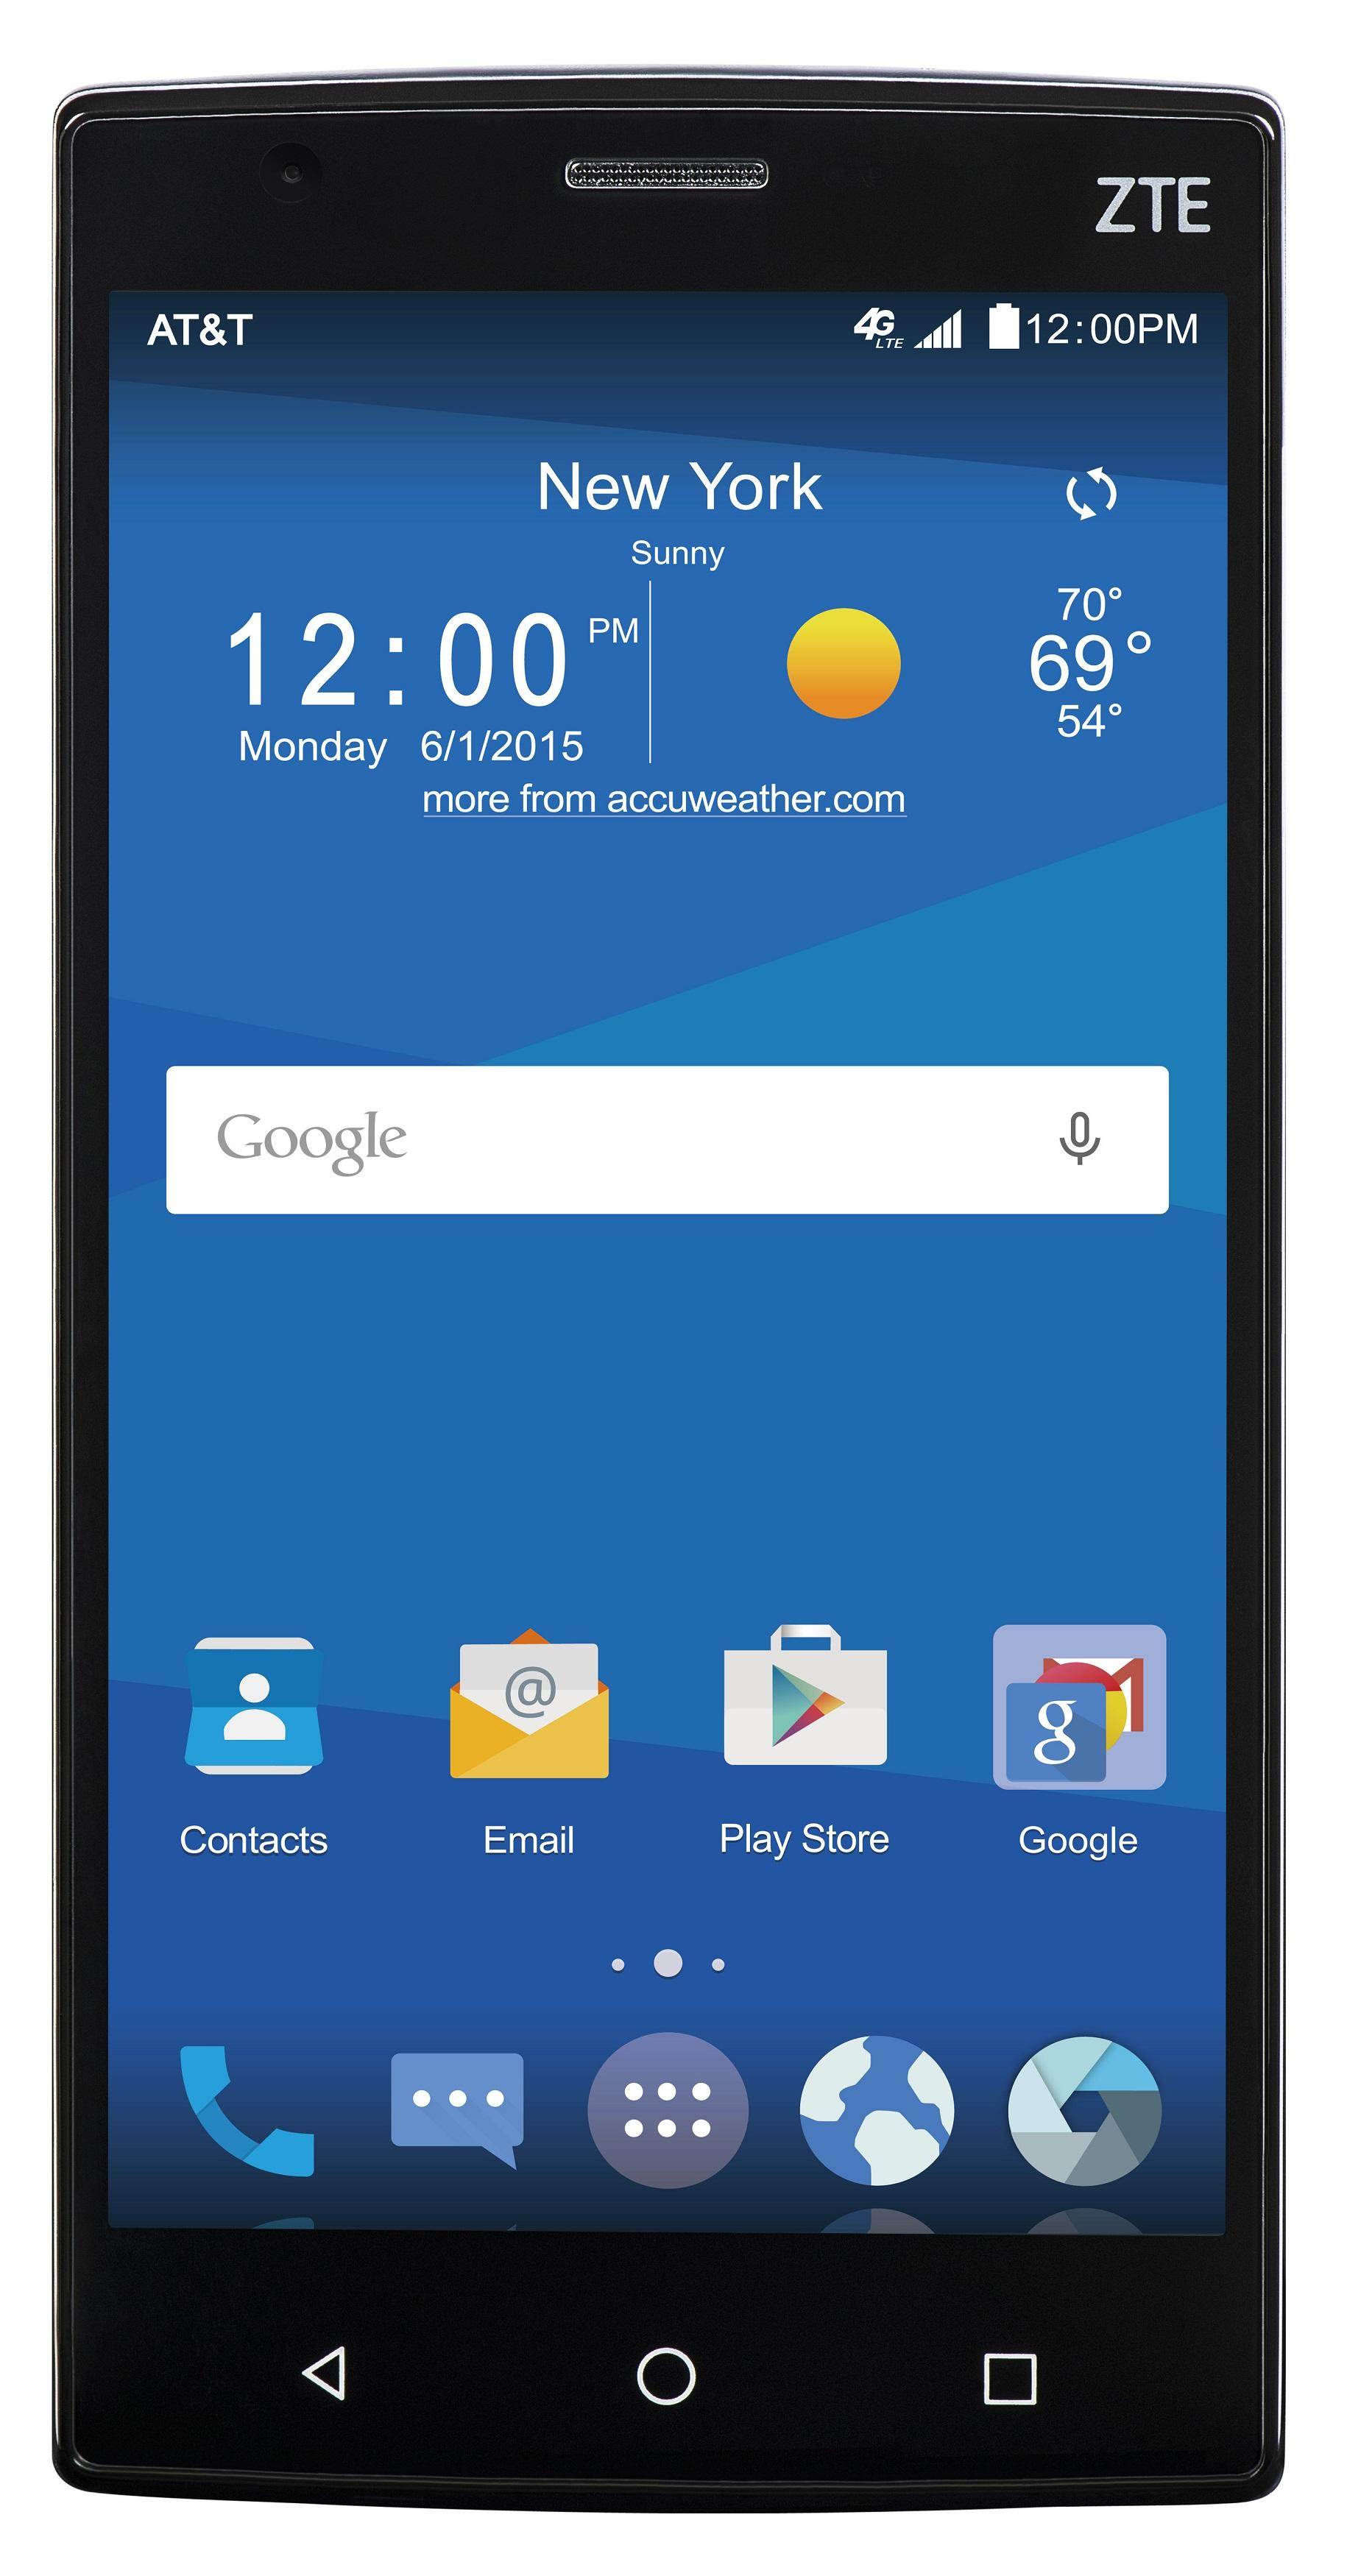 the zte max gsm from listAdd you